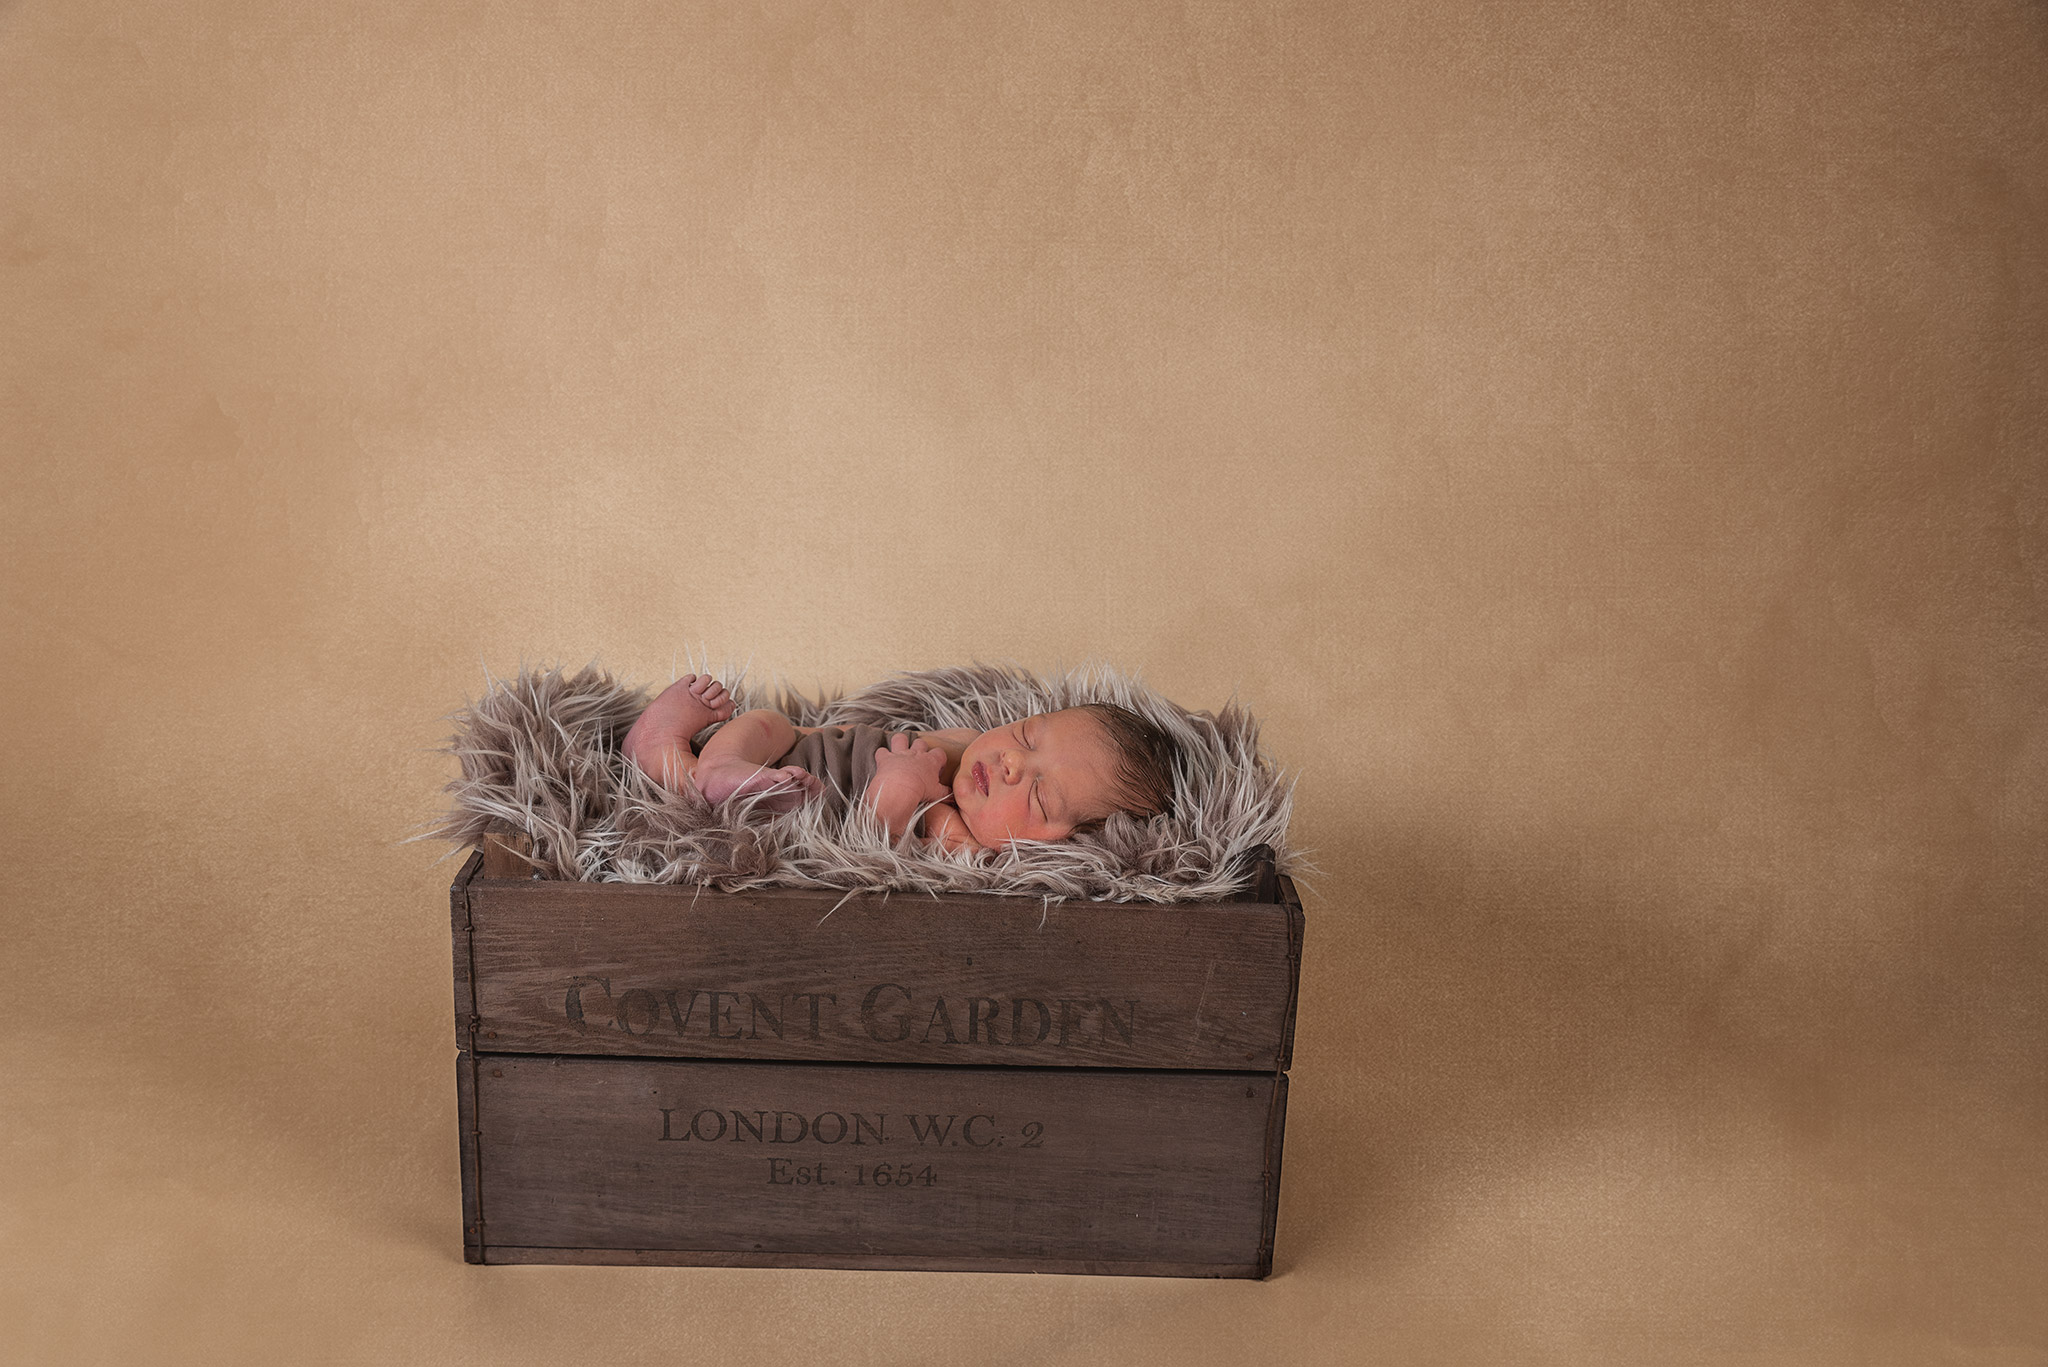 Brown fury blanket in a Brown wooden crate with a newborn baby boy laying on his back wrapped in a brown fabric with feet and arms showing. Baby is sleeping and the background is beige